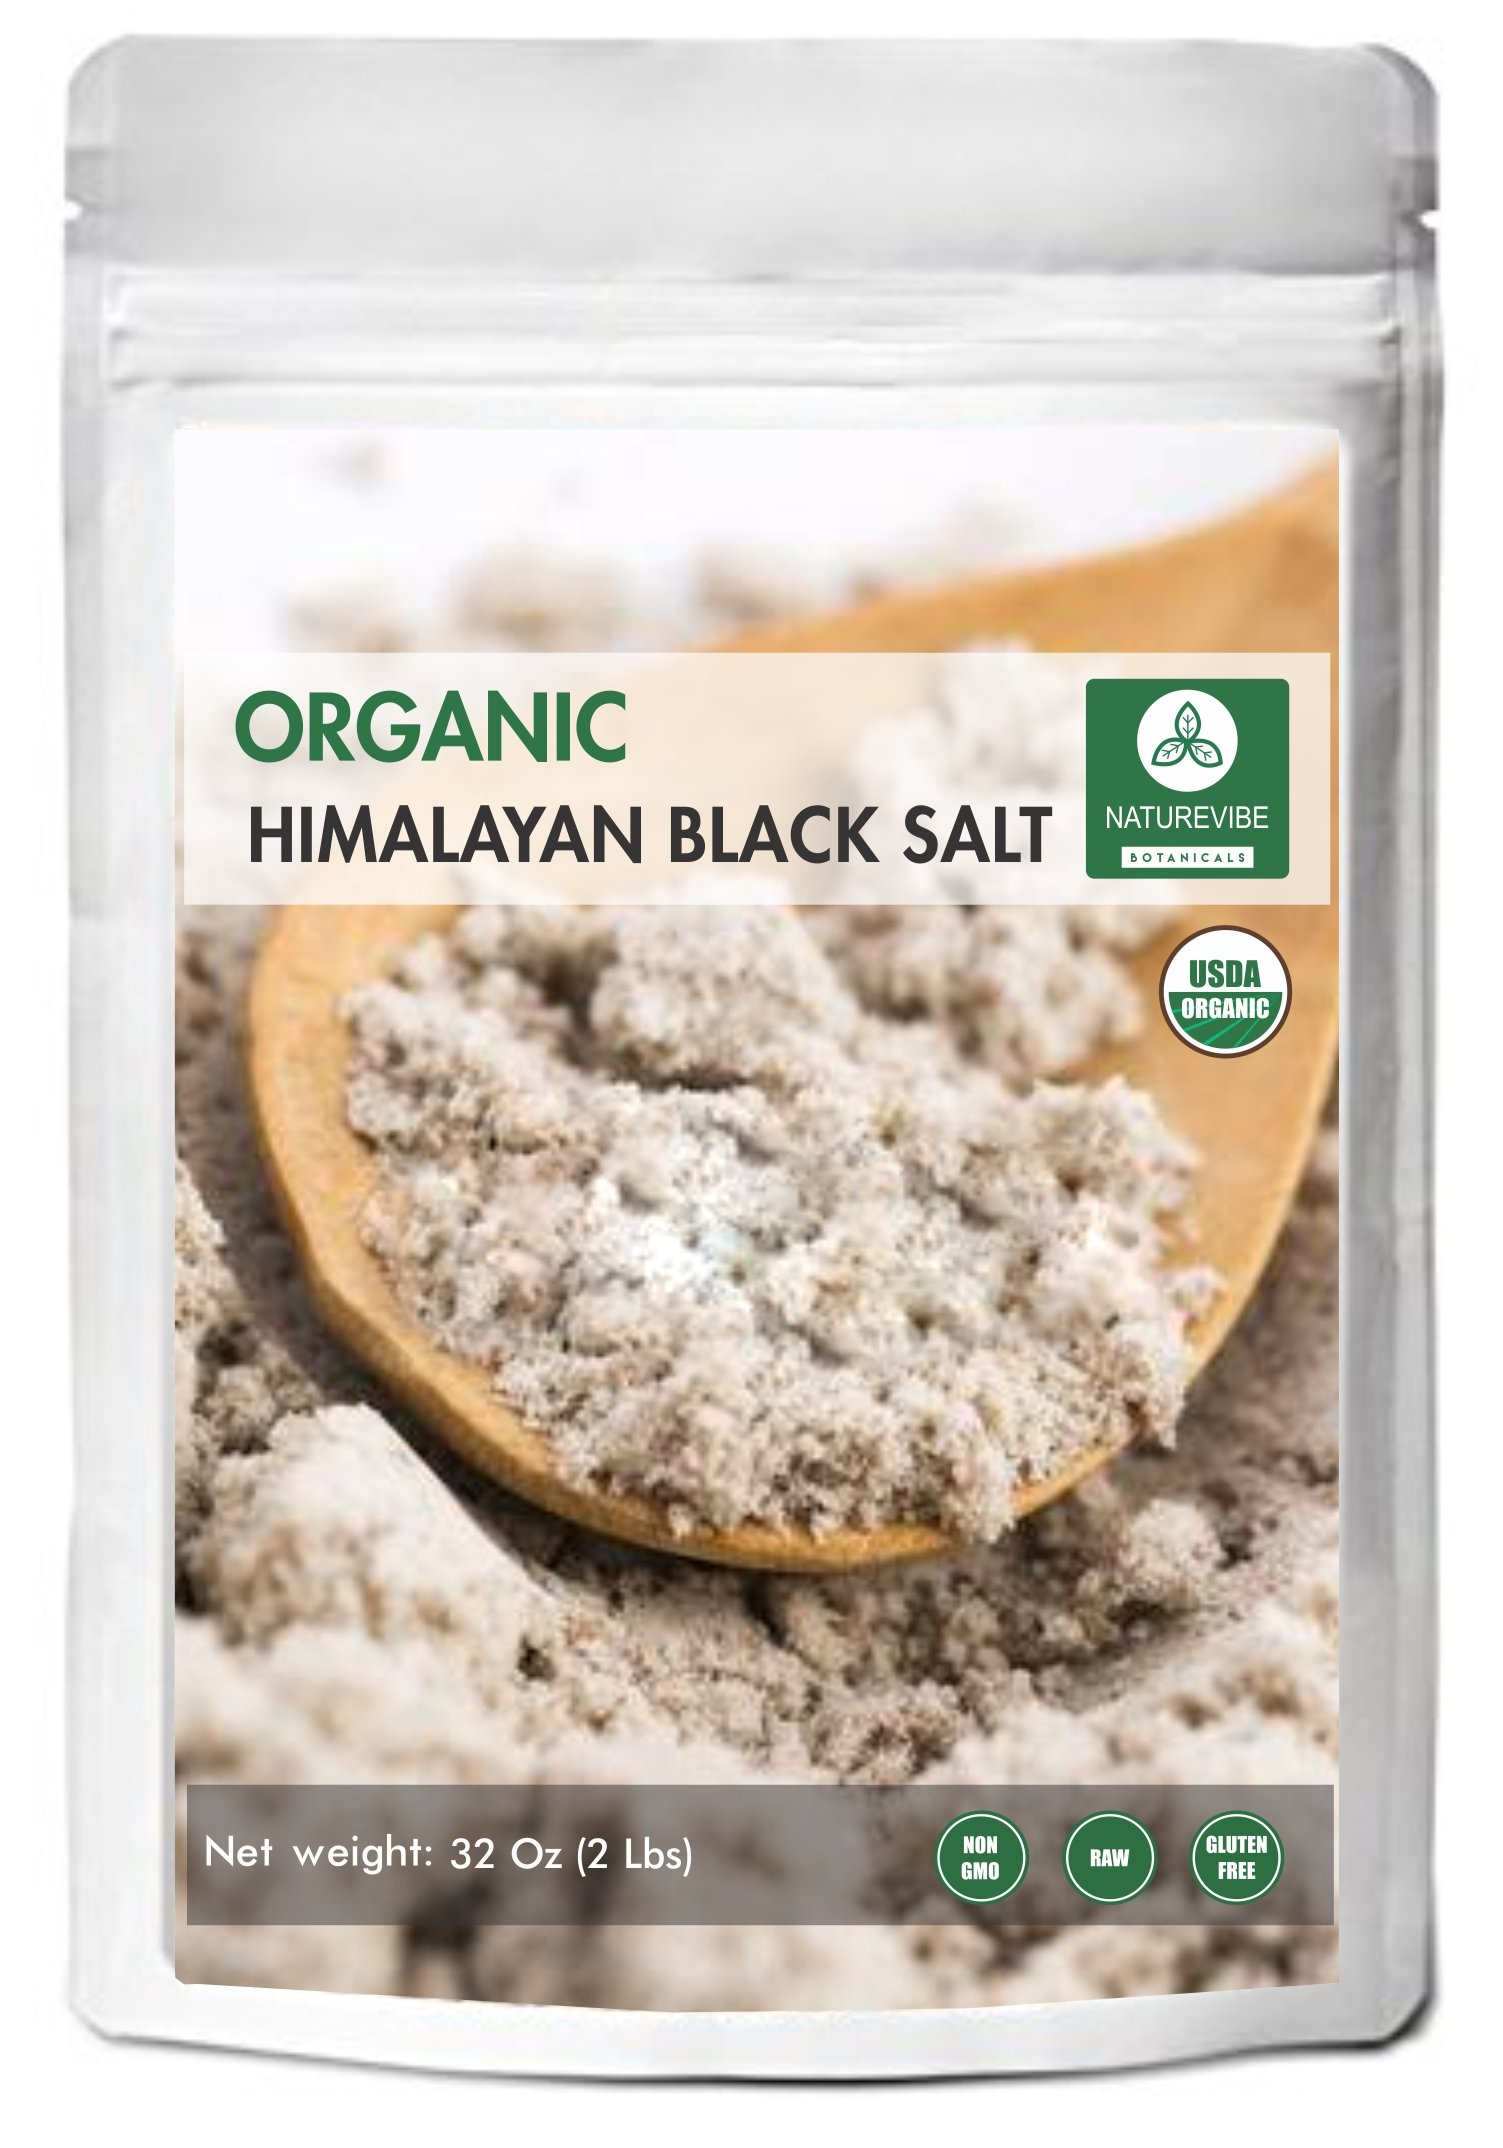 100% Natural & Healthy Himalayan Black Salt (2lb) by Naturevibe Botanicals, Gluten-Free & Non-GMO (32 ounces) (Fine - Cooking Size)